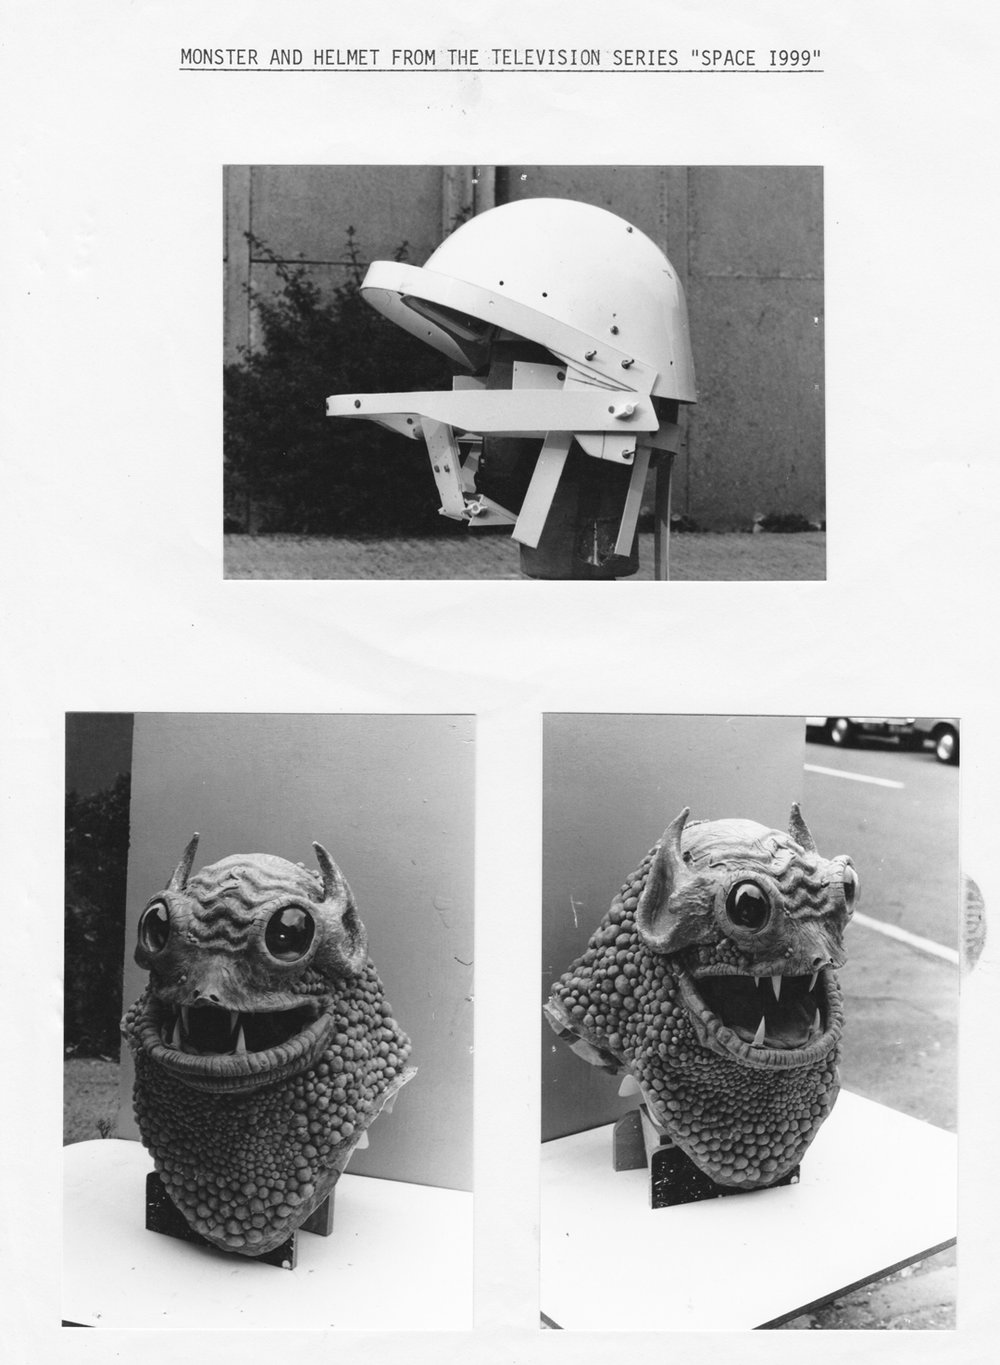 Internal support frame - As Latex can be quite heavy when built up into the Monster, a support framework, fitting either the head or shoulders, can assist the actor to perform more convincingly.With this monster, Andrew made a support frame from one of the Rebel helmets he made for Star Wars ( A New Hope).The monster's mouth movement was articulated from the jaw of the actor by the use of lightweight ABS plastic components.